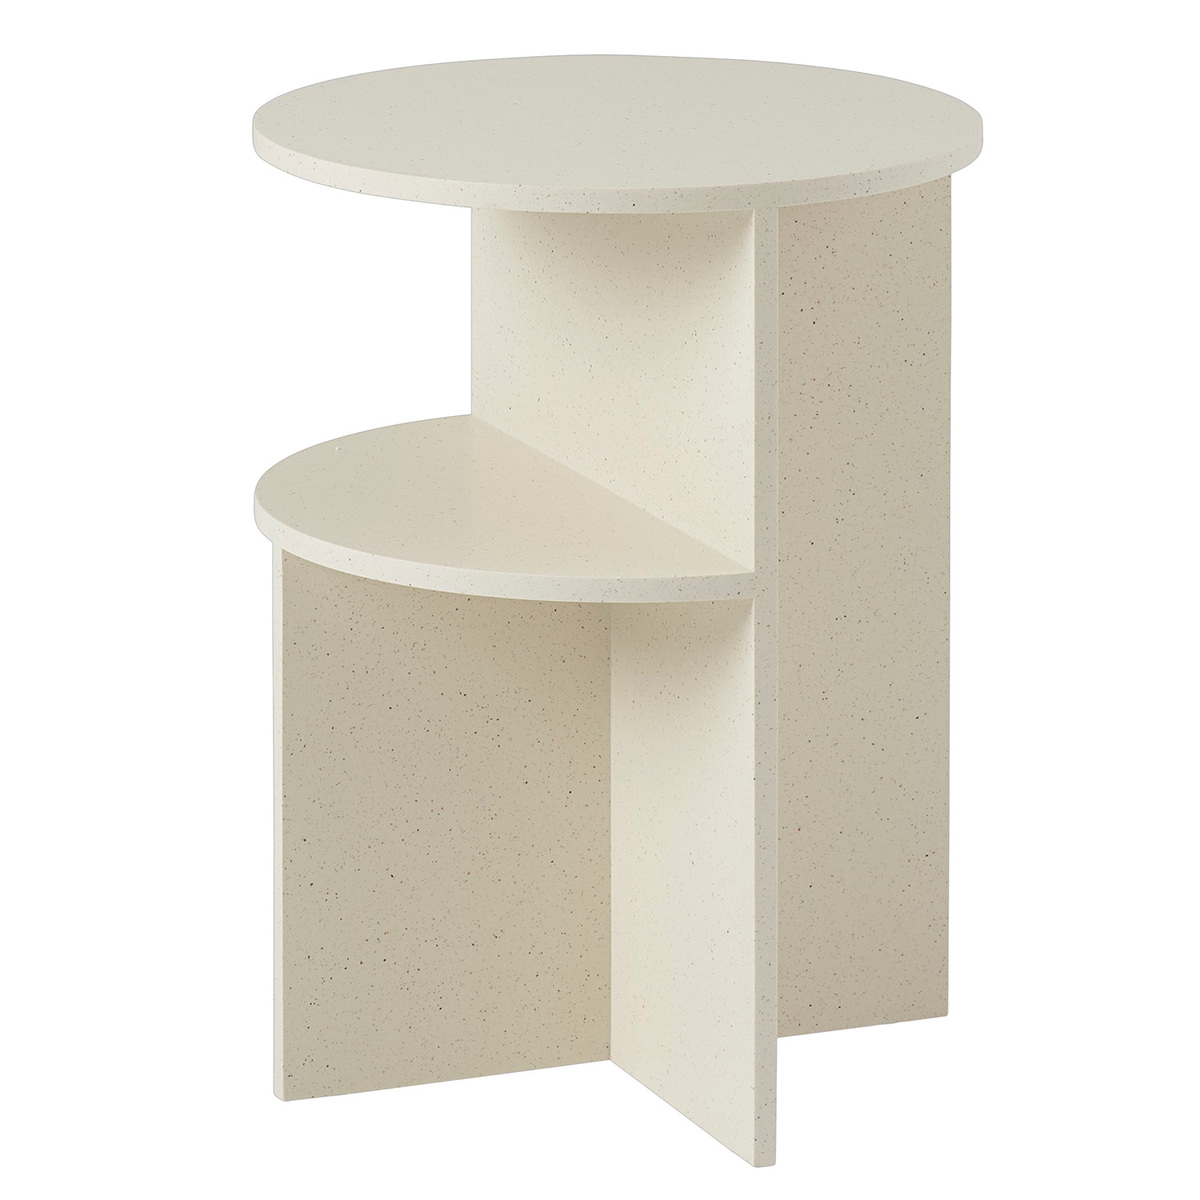 BeNeLux Home Office 2 Shelf Small Display Wood Side Table